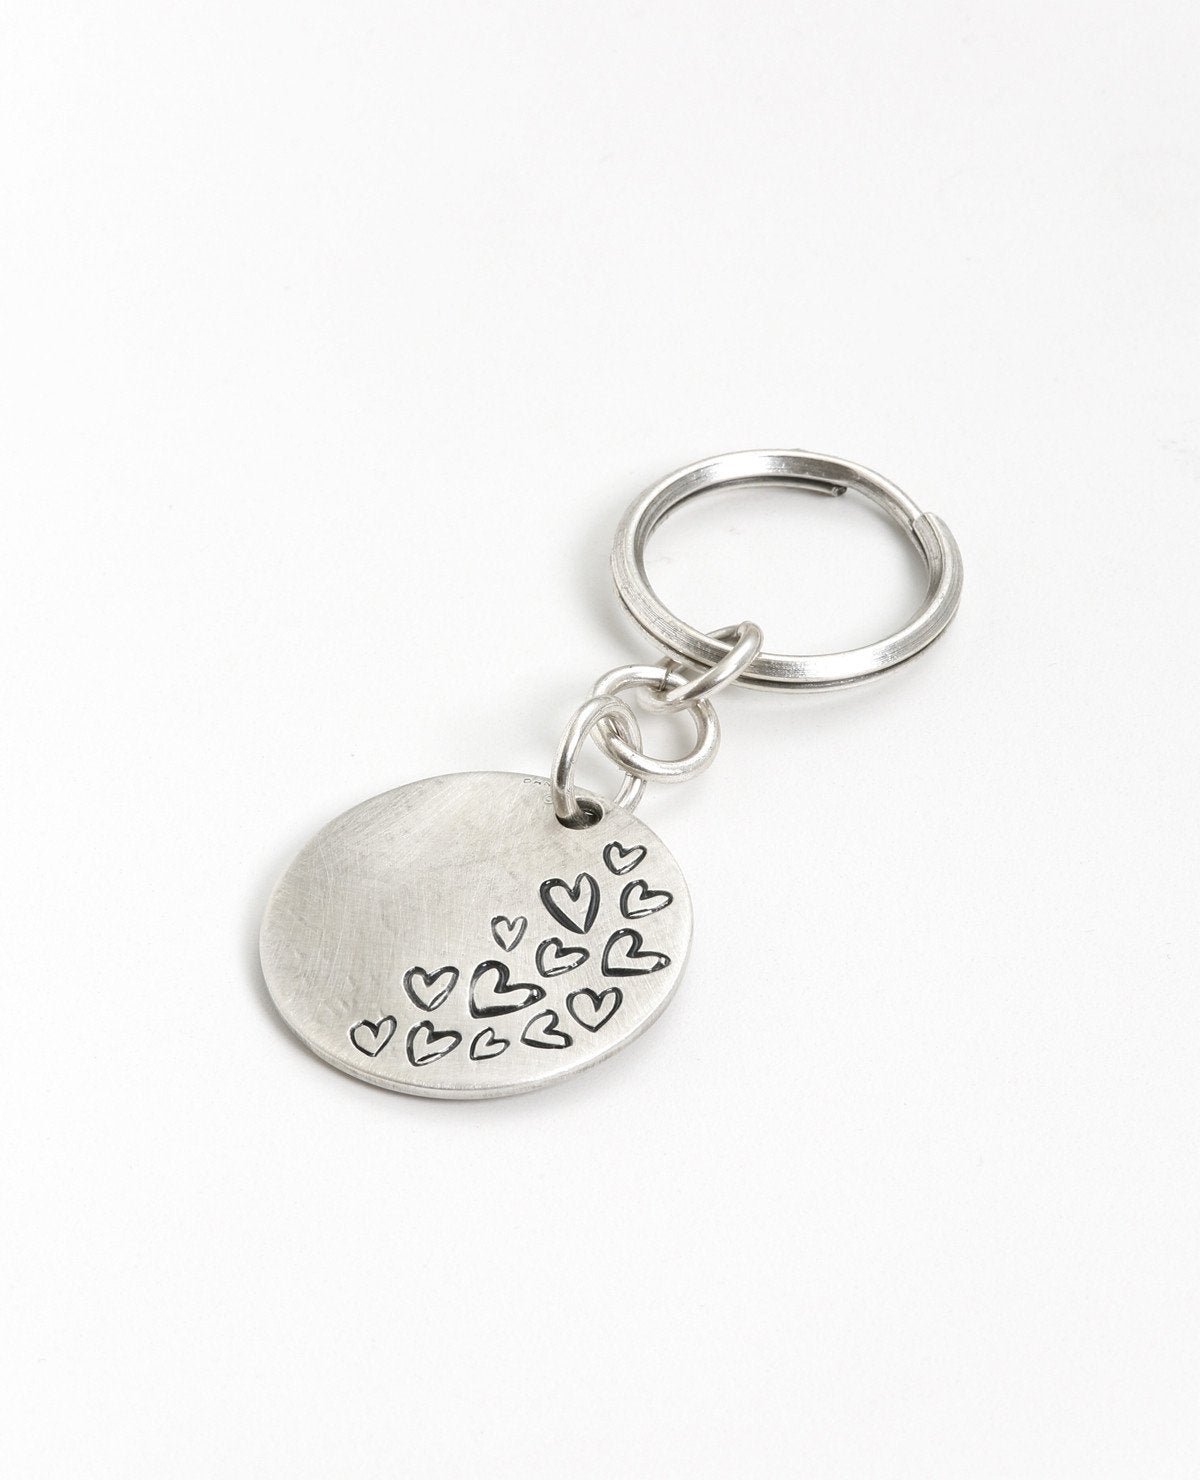 You are Always in My Heart Dad Keychain 106T